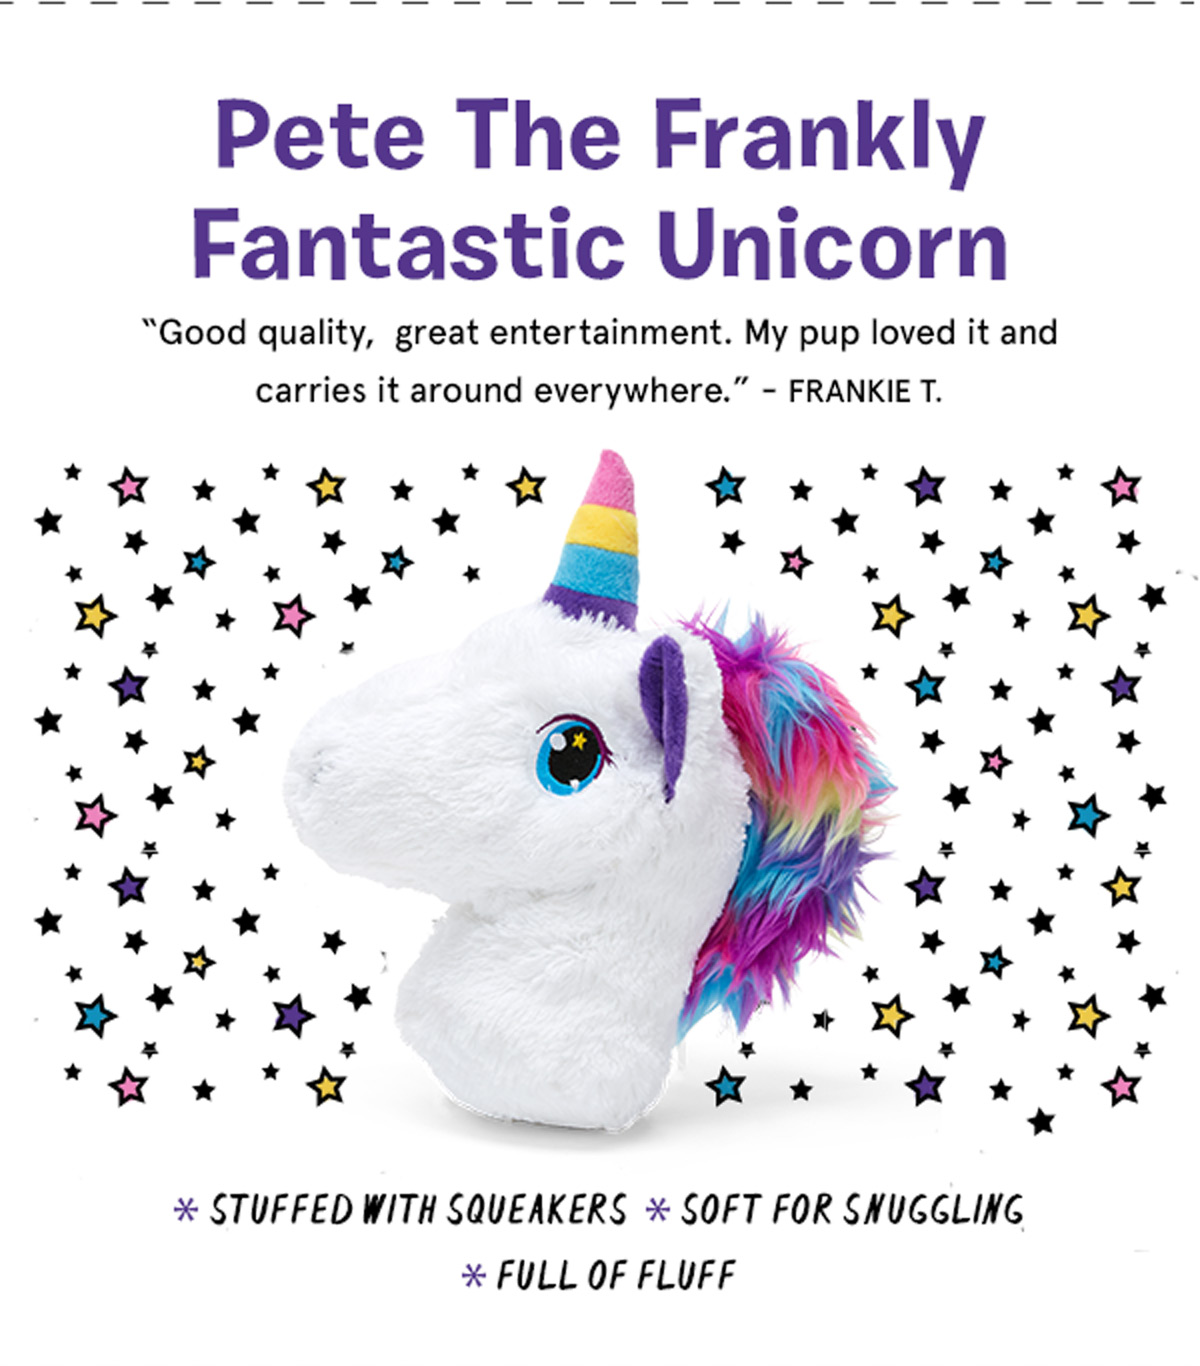 Pete The Frankly Fantastic Unicorn